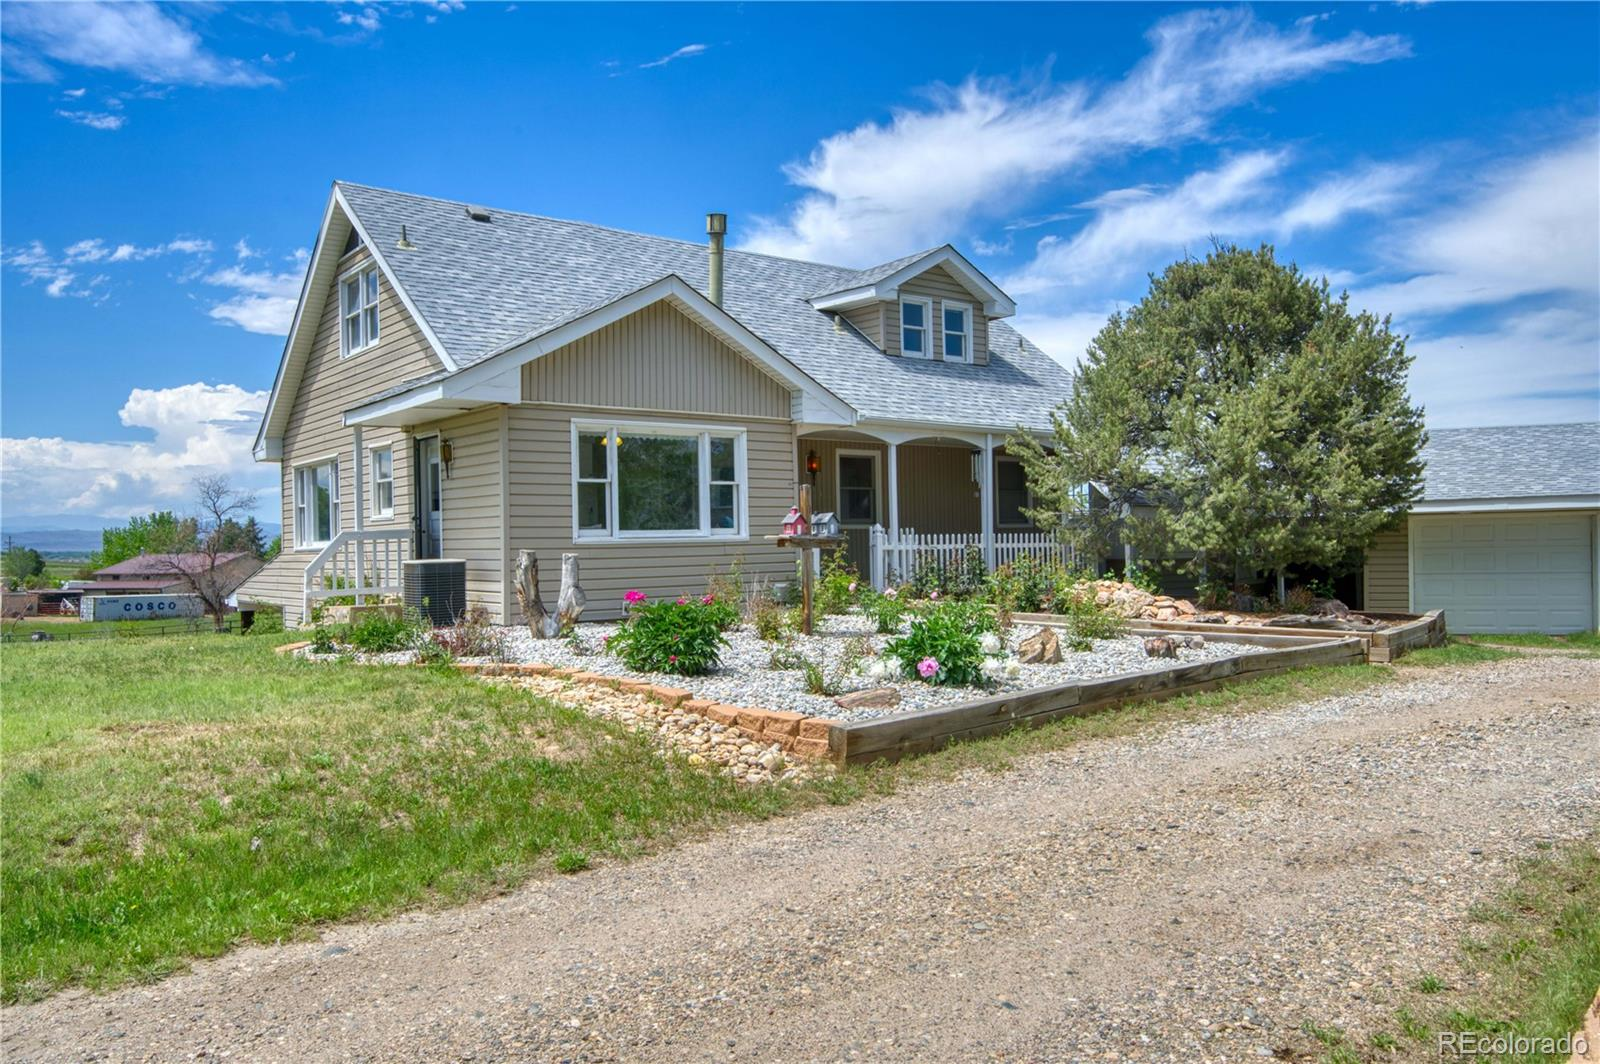 7525 Joel Place, Johnstown, CO 80534 - Johnstown, CO real estate listing